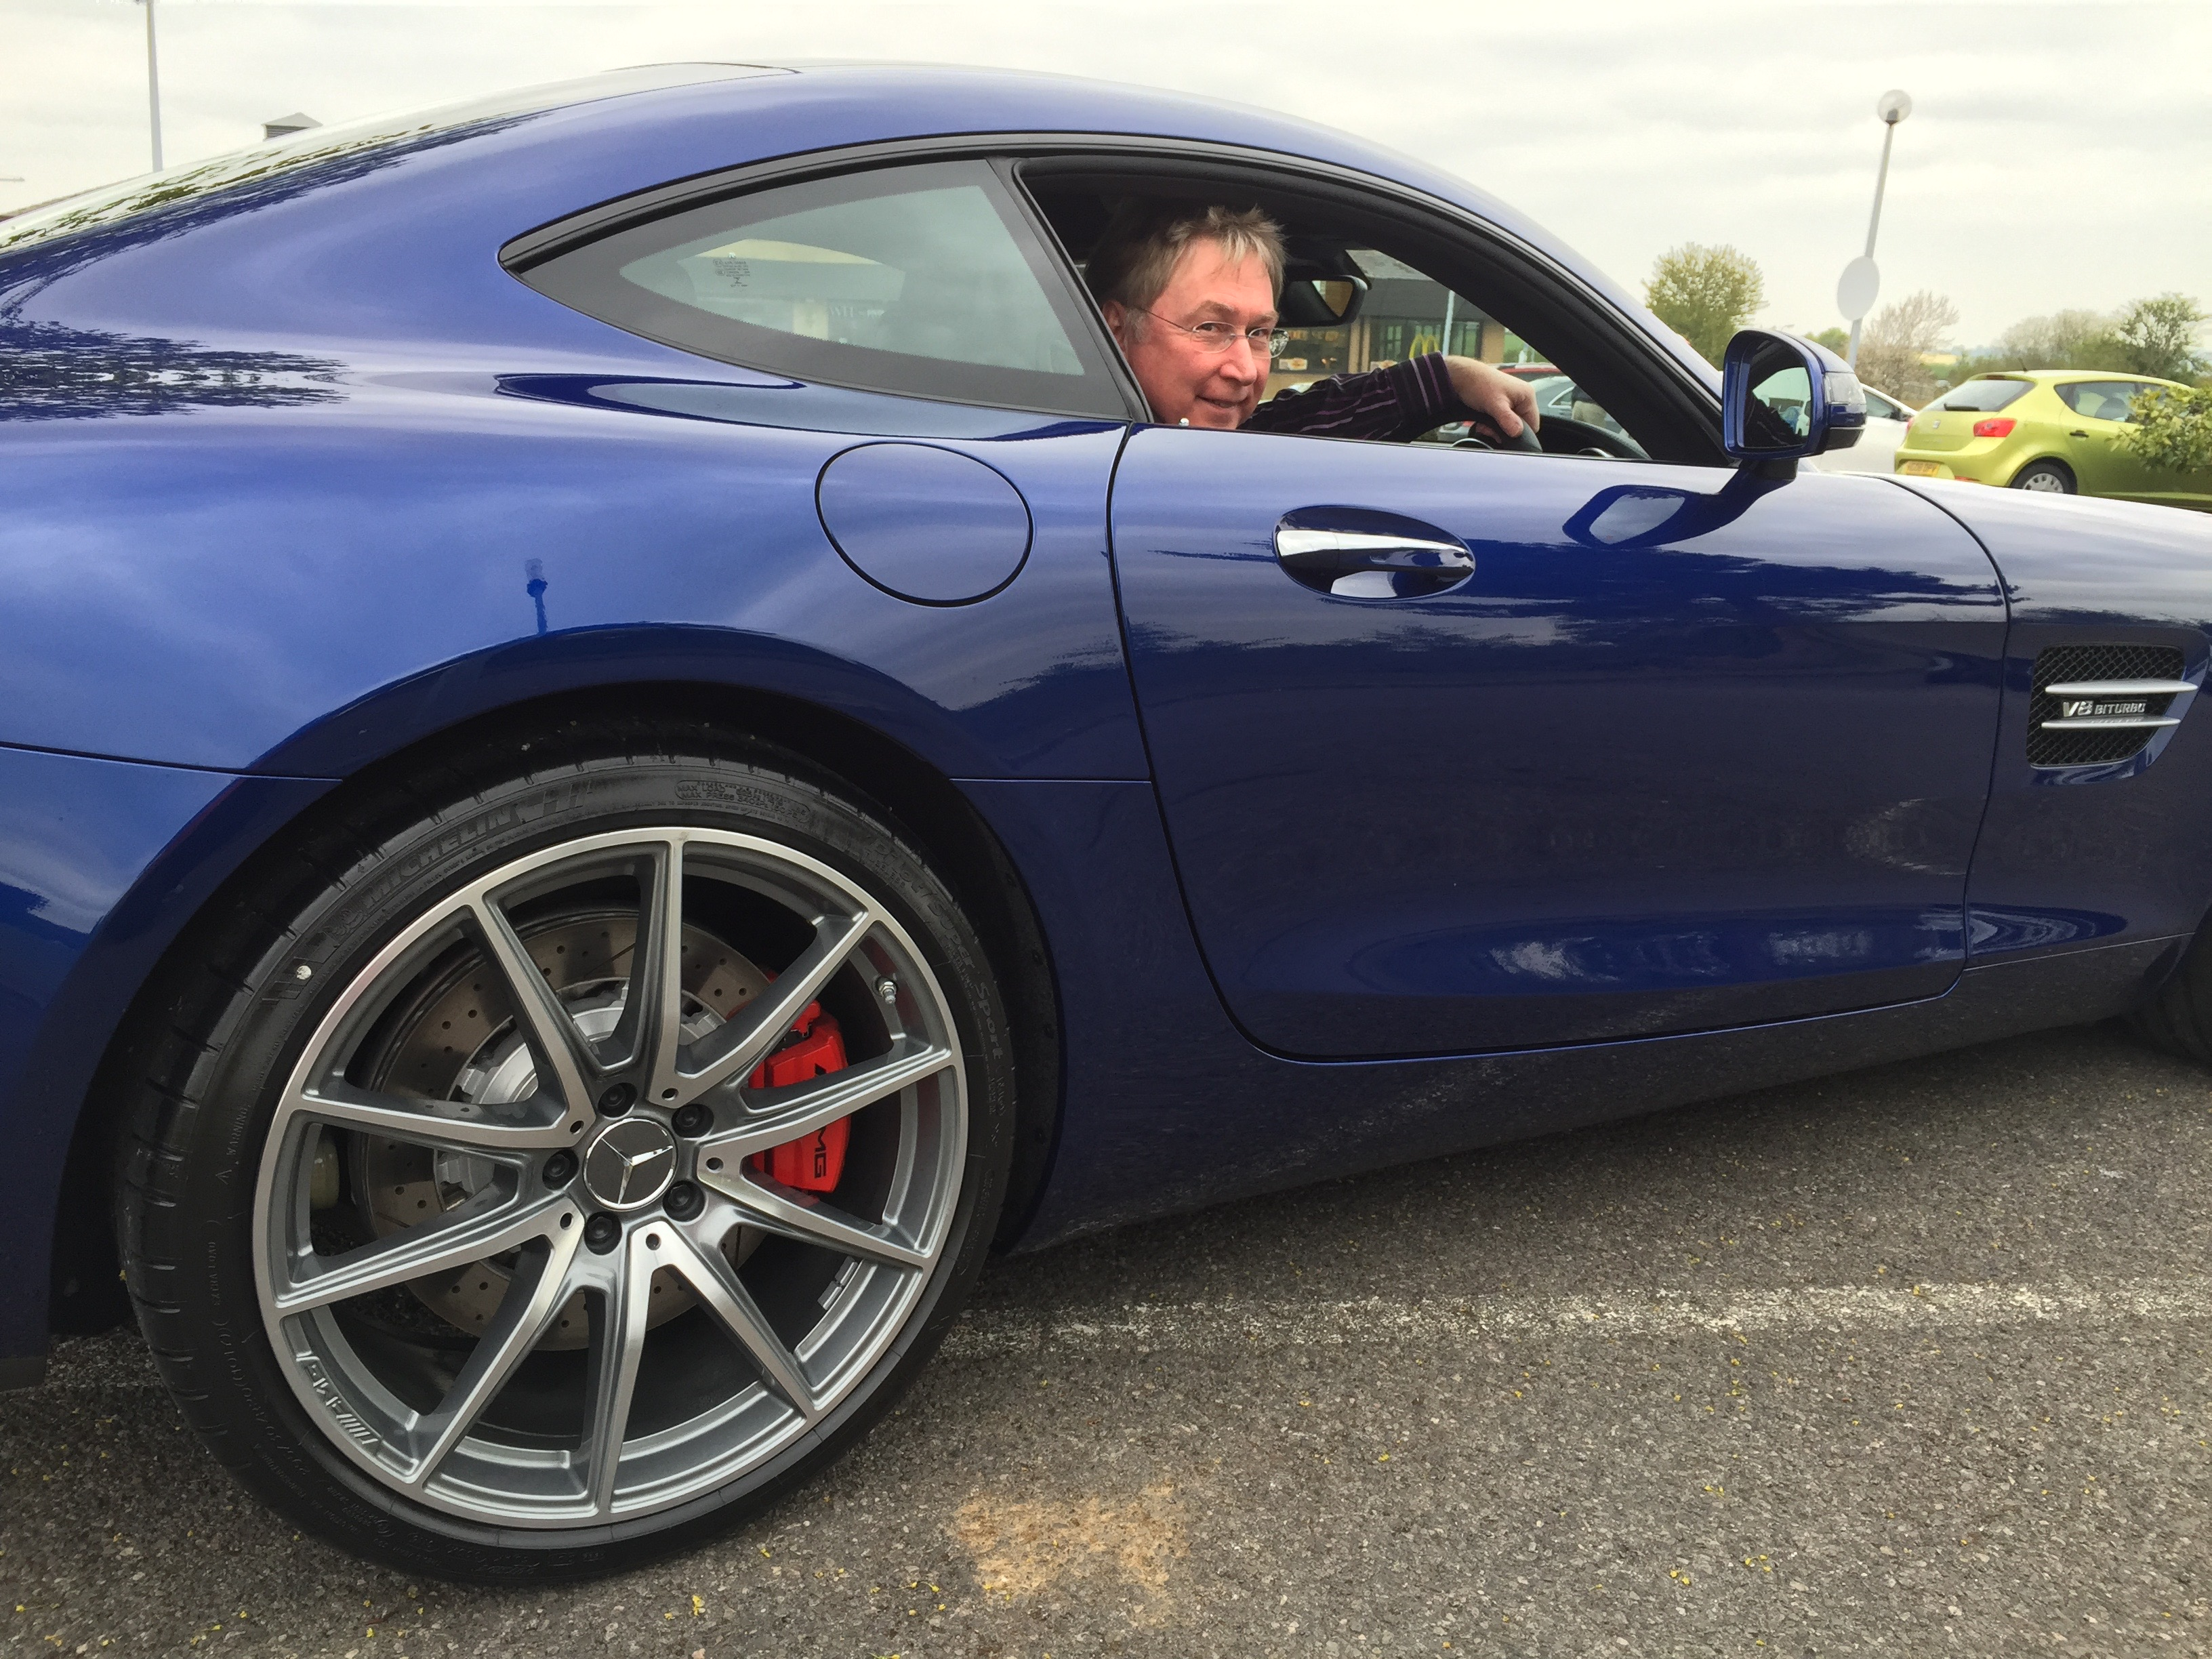 The author photographed sitting in a blue Mercedes AMG GT V8 powered sports car